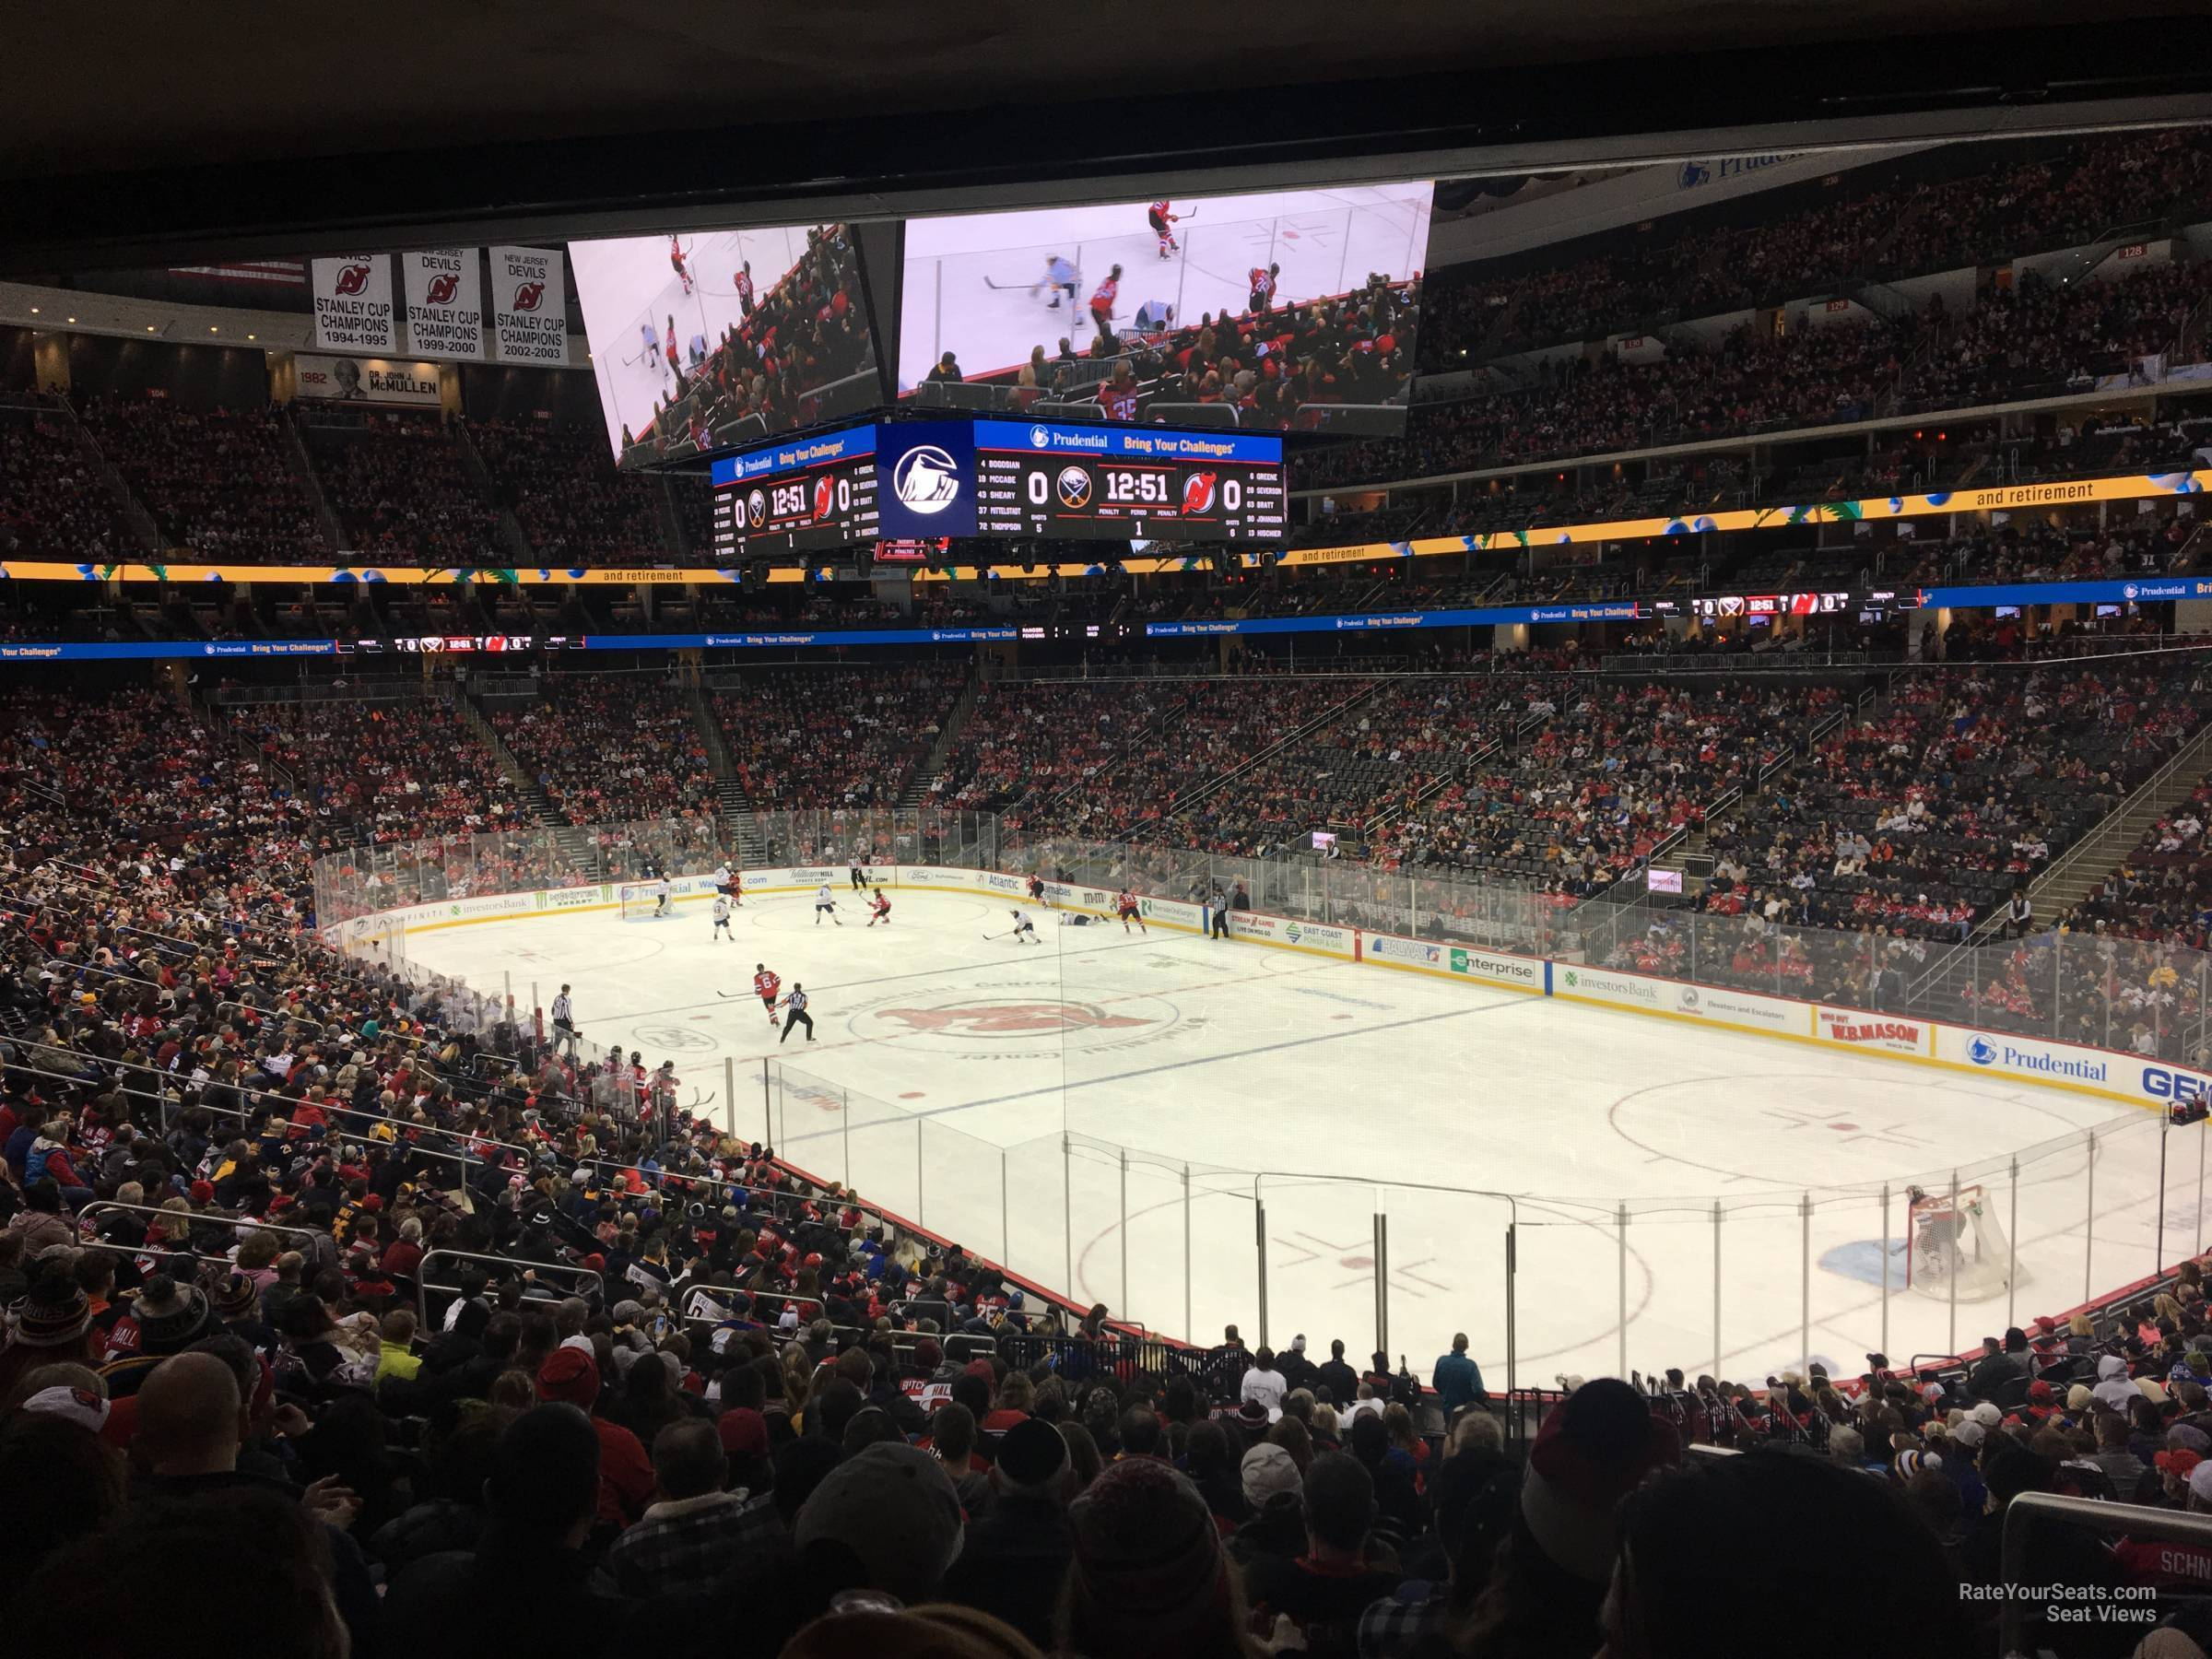 New Jersey Devils Seat View for Prudential Center Section 11, Row 24